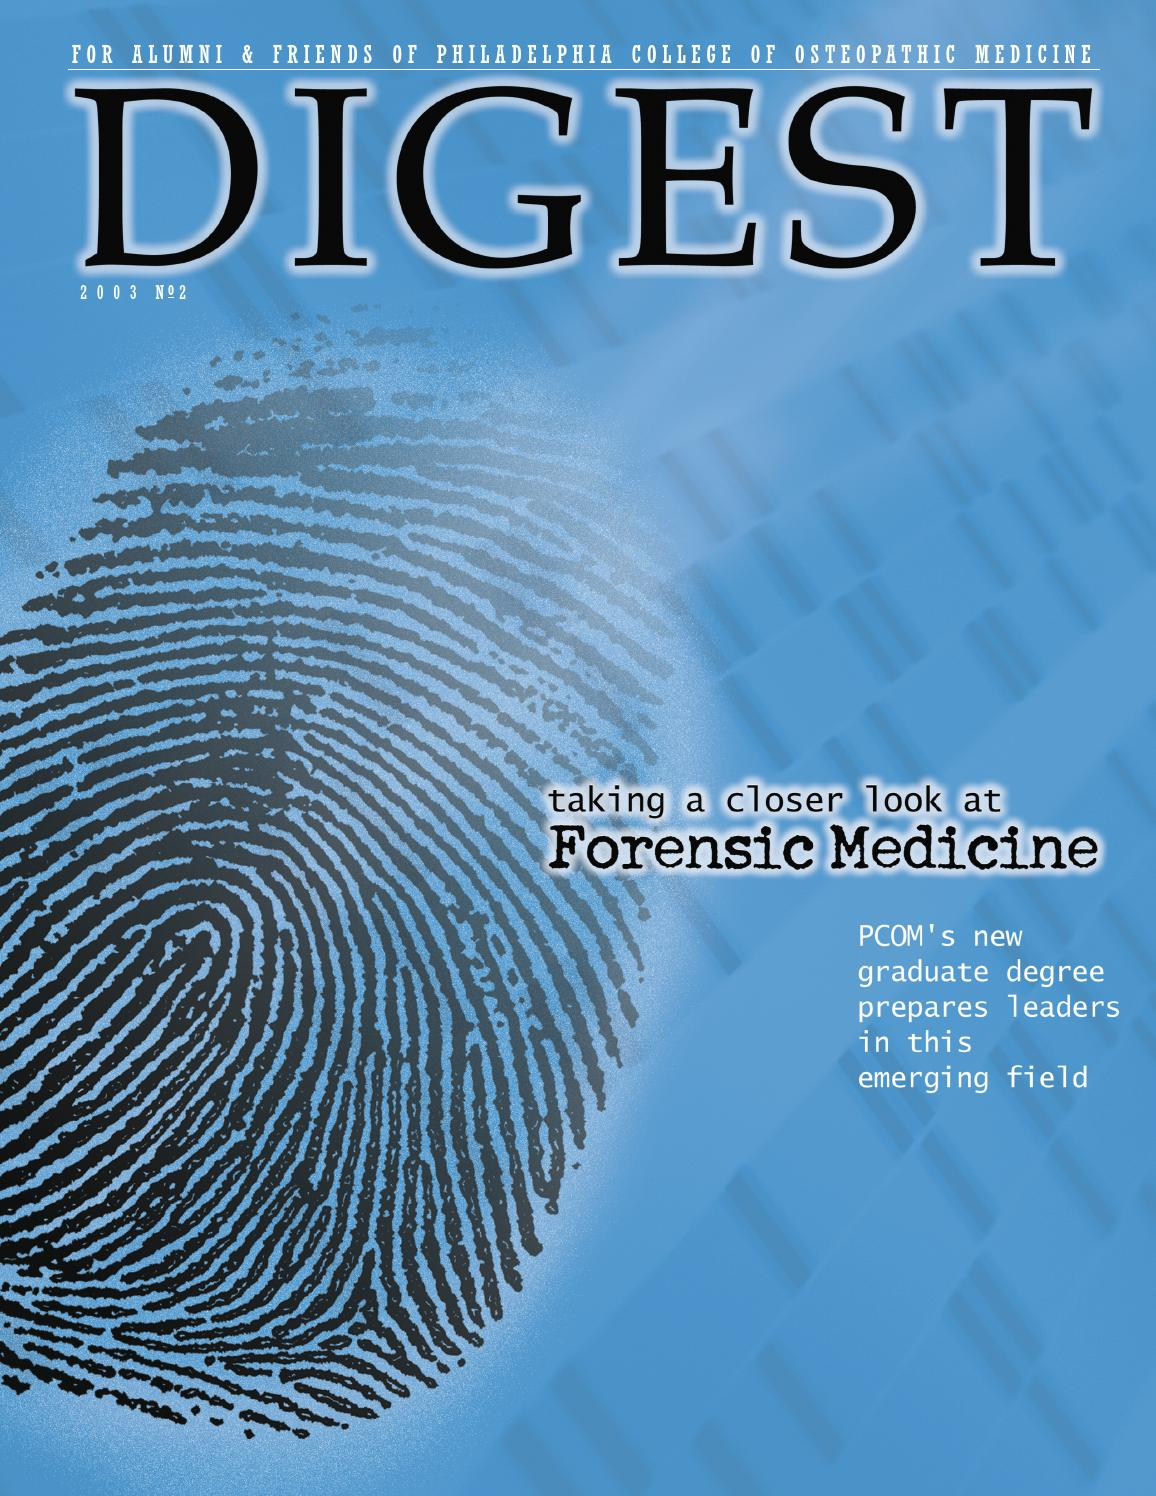 2003 digest no2 by Philadelphia College of Osteopathic